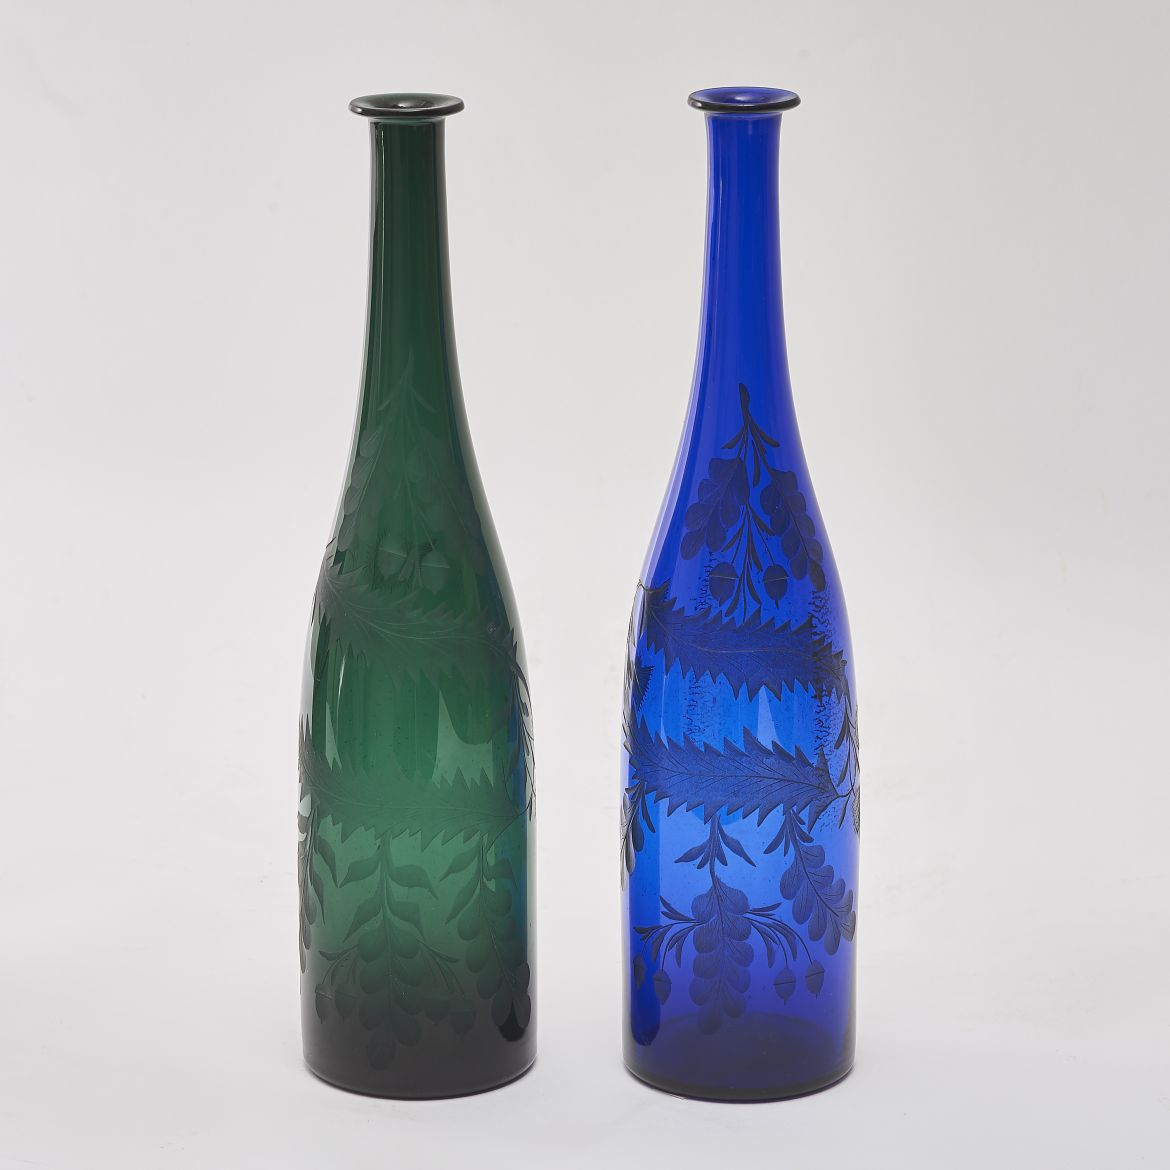 Victorian Engraved Carafes